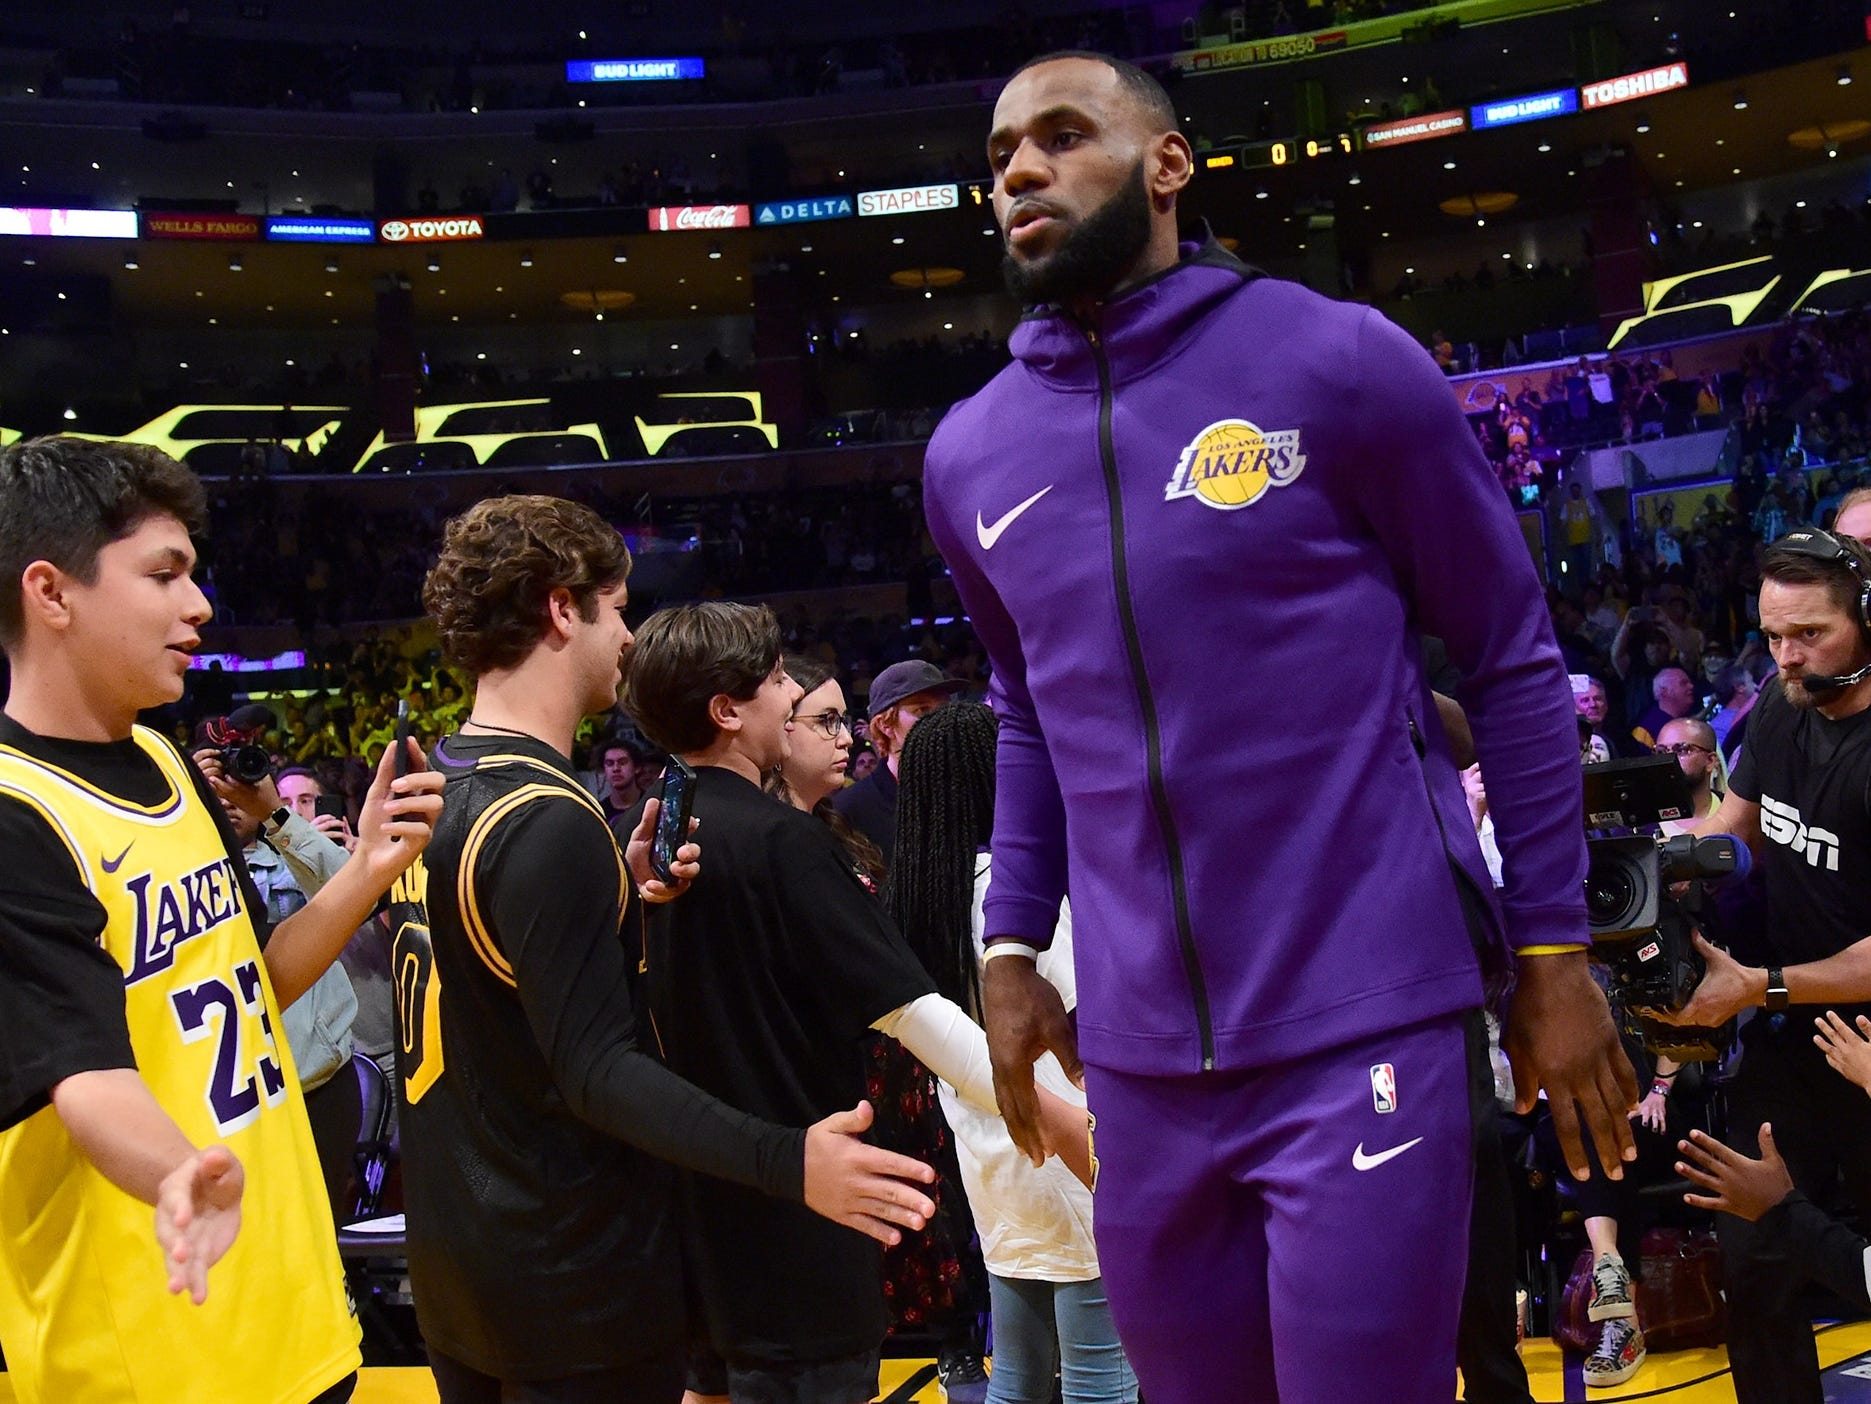 Oct. 20: LeBron James takes the court for his Lakers home debut against the Rockets.